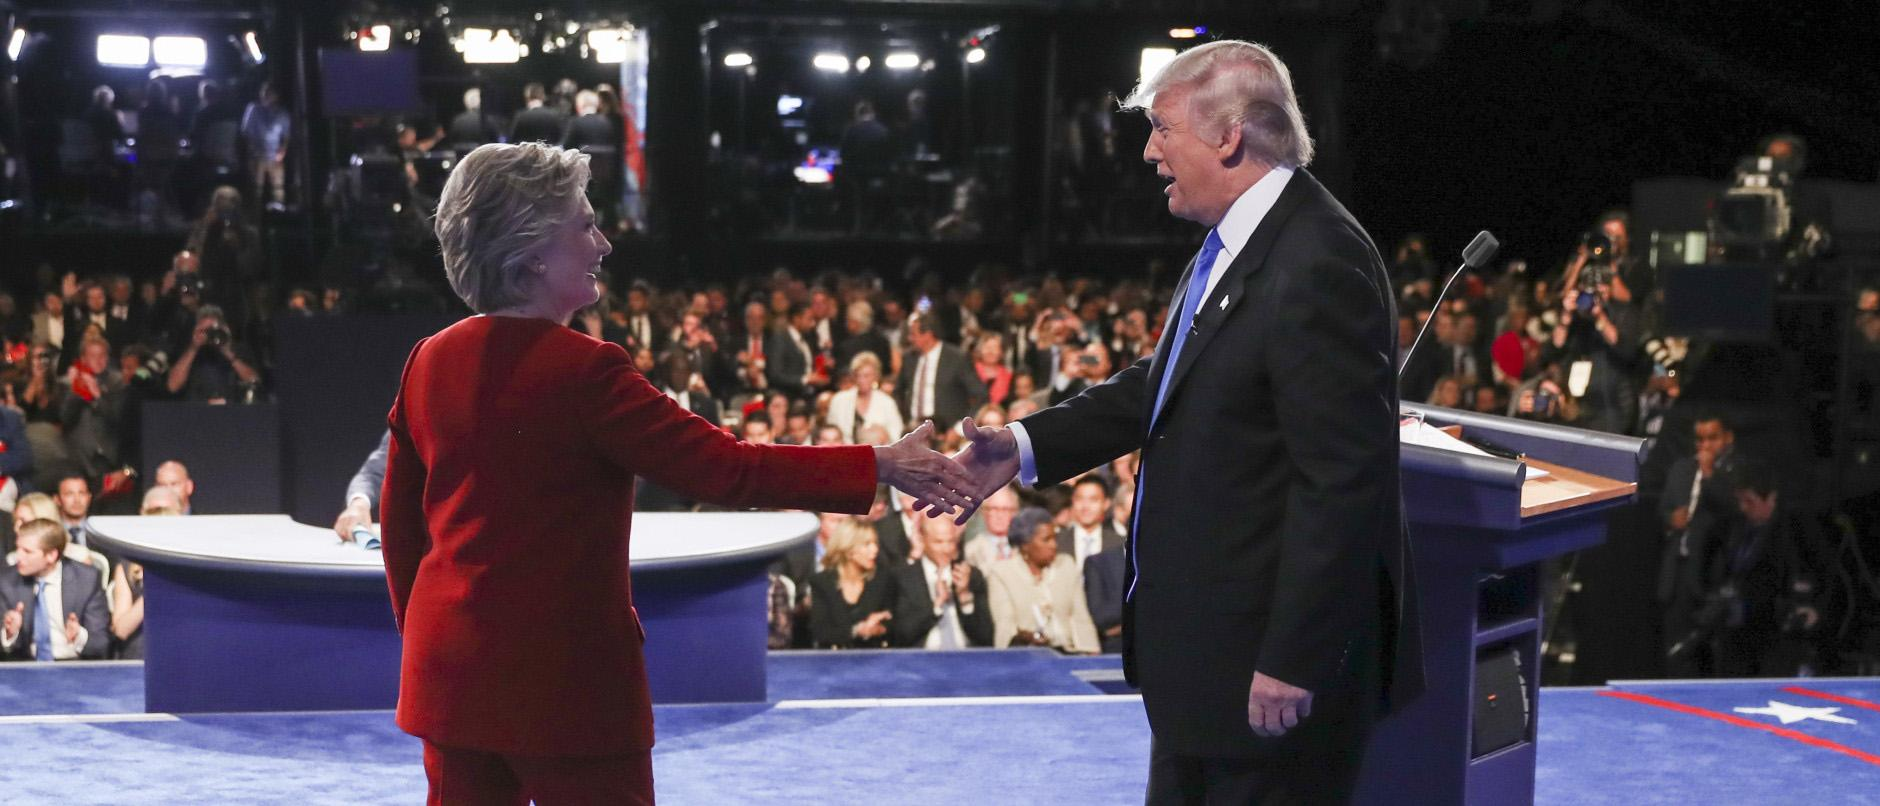 First presidential debate Overview